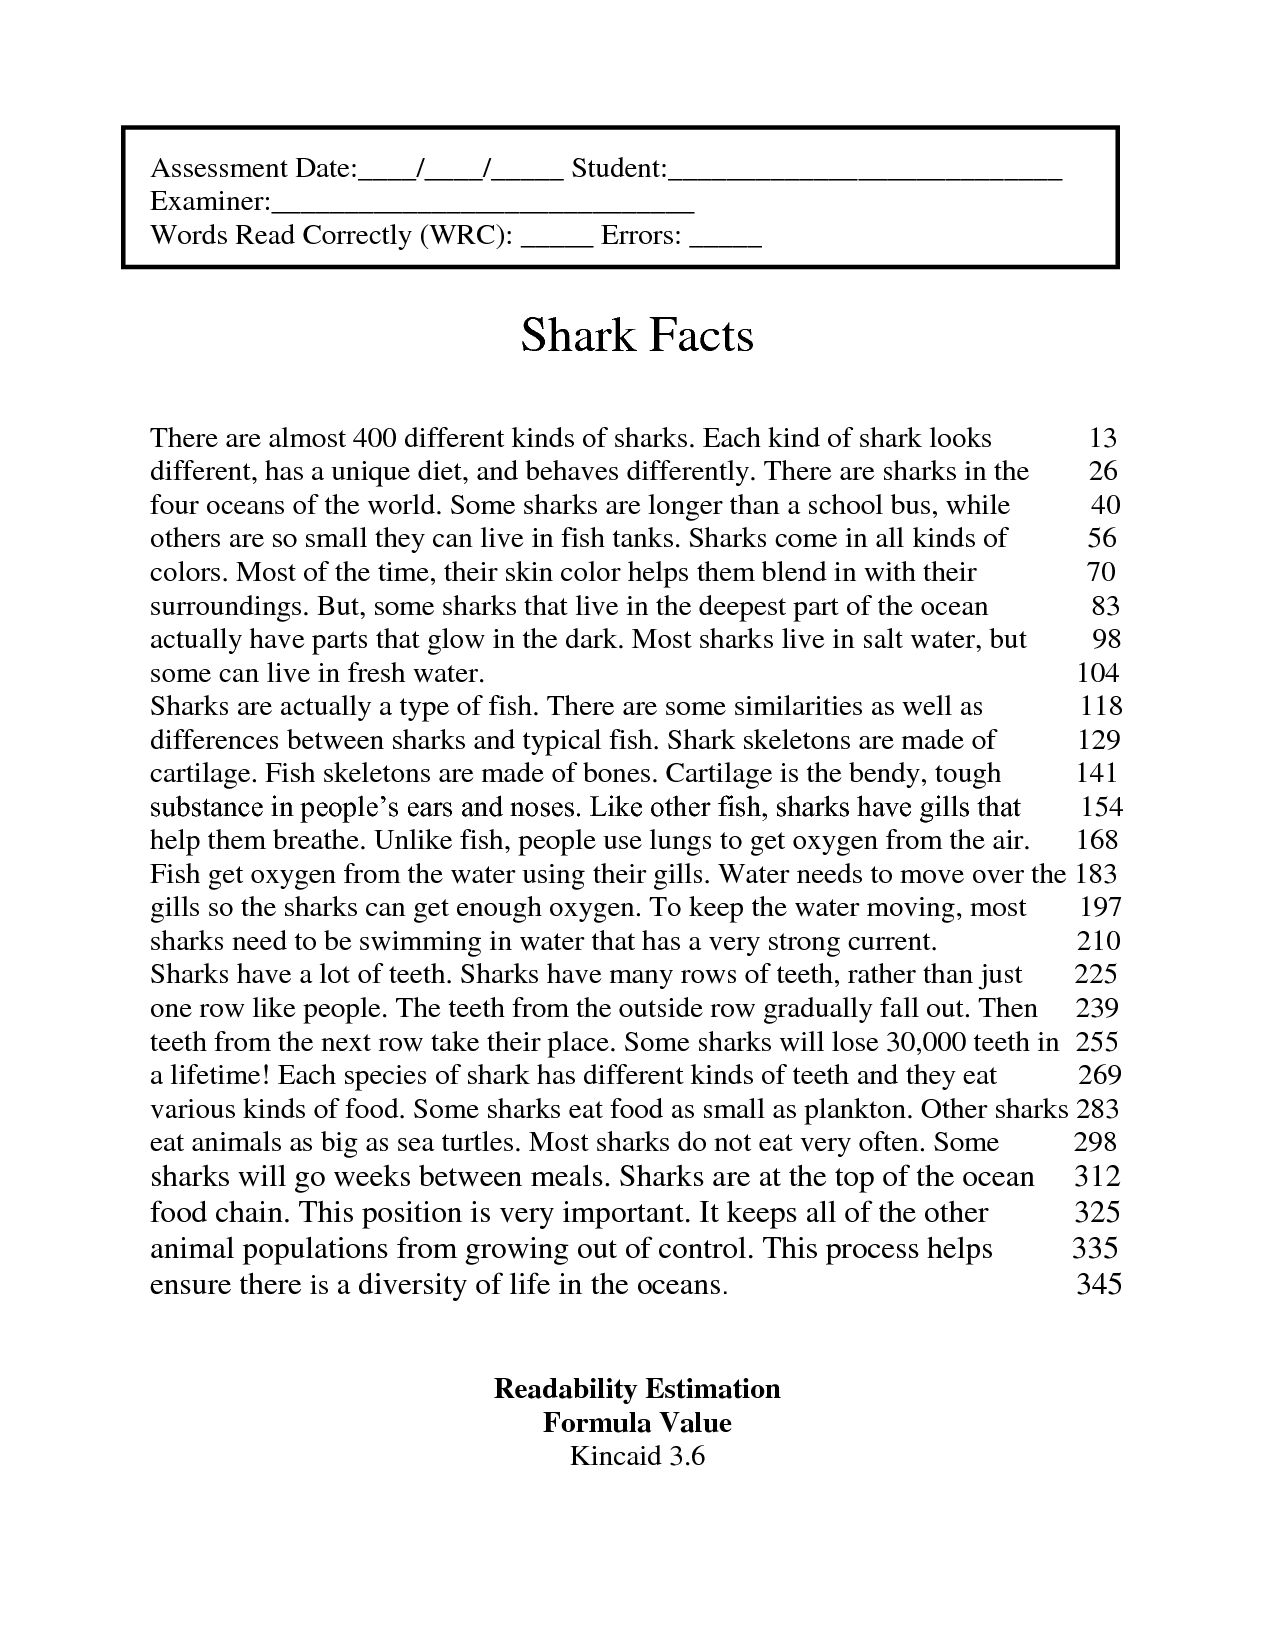 Worksheet Short Reading Passages For 4th Grade worksheet timed reading exercises mikyu free fluency assessments for fourth grade pdf comprehension worksheets 4th sage